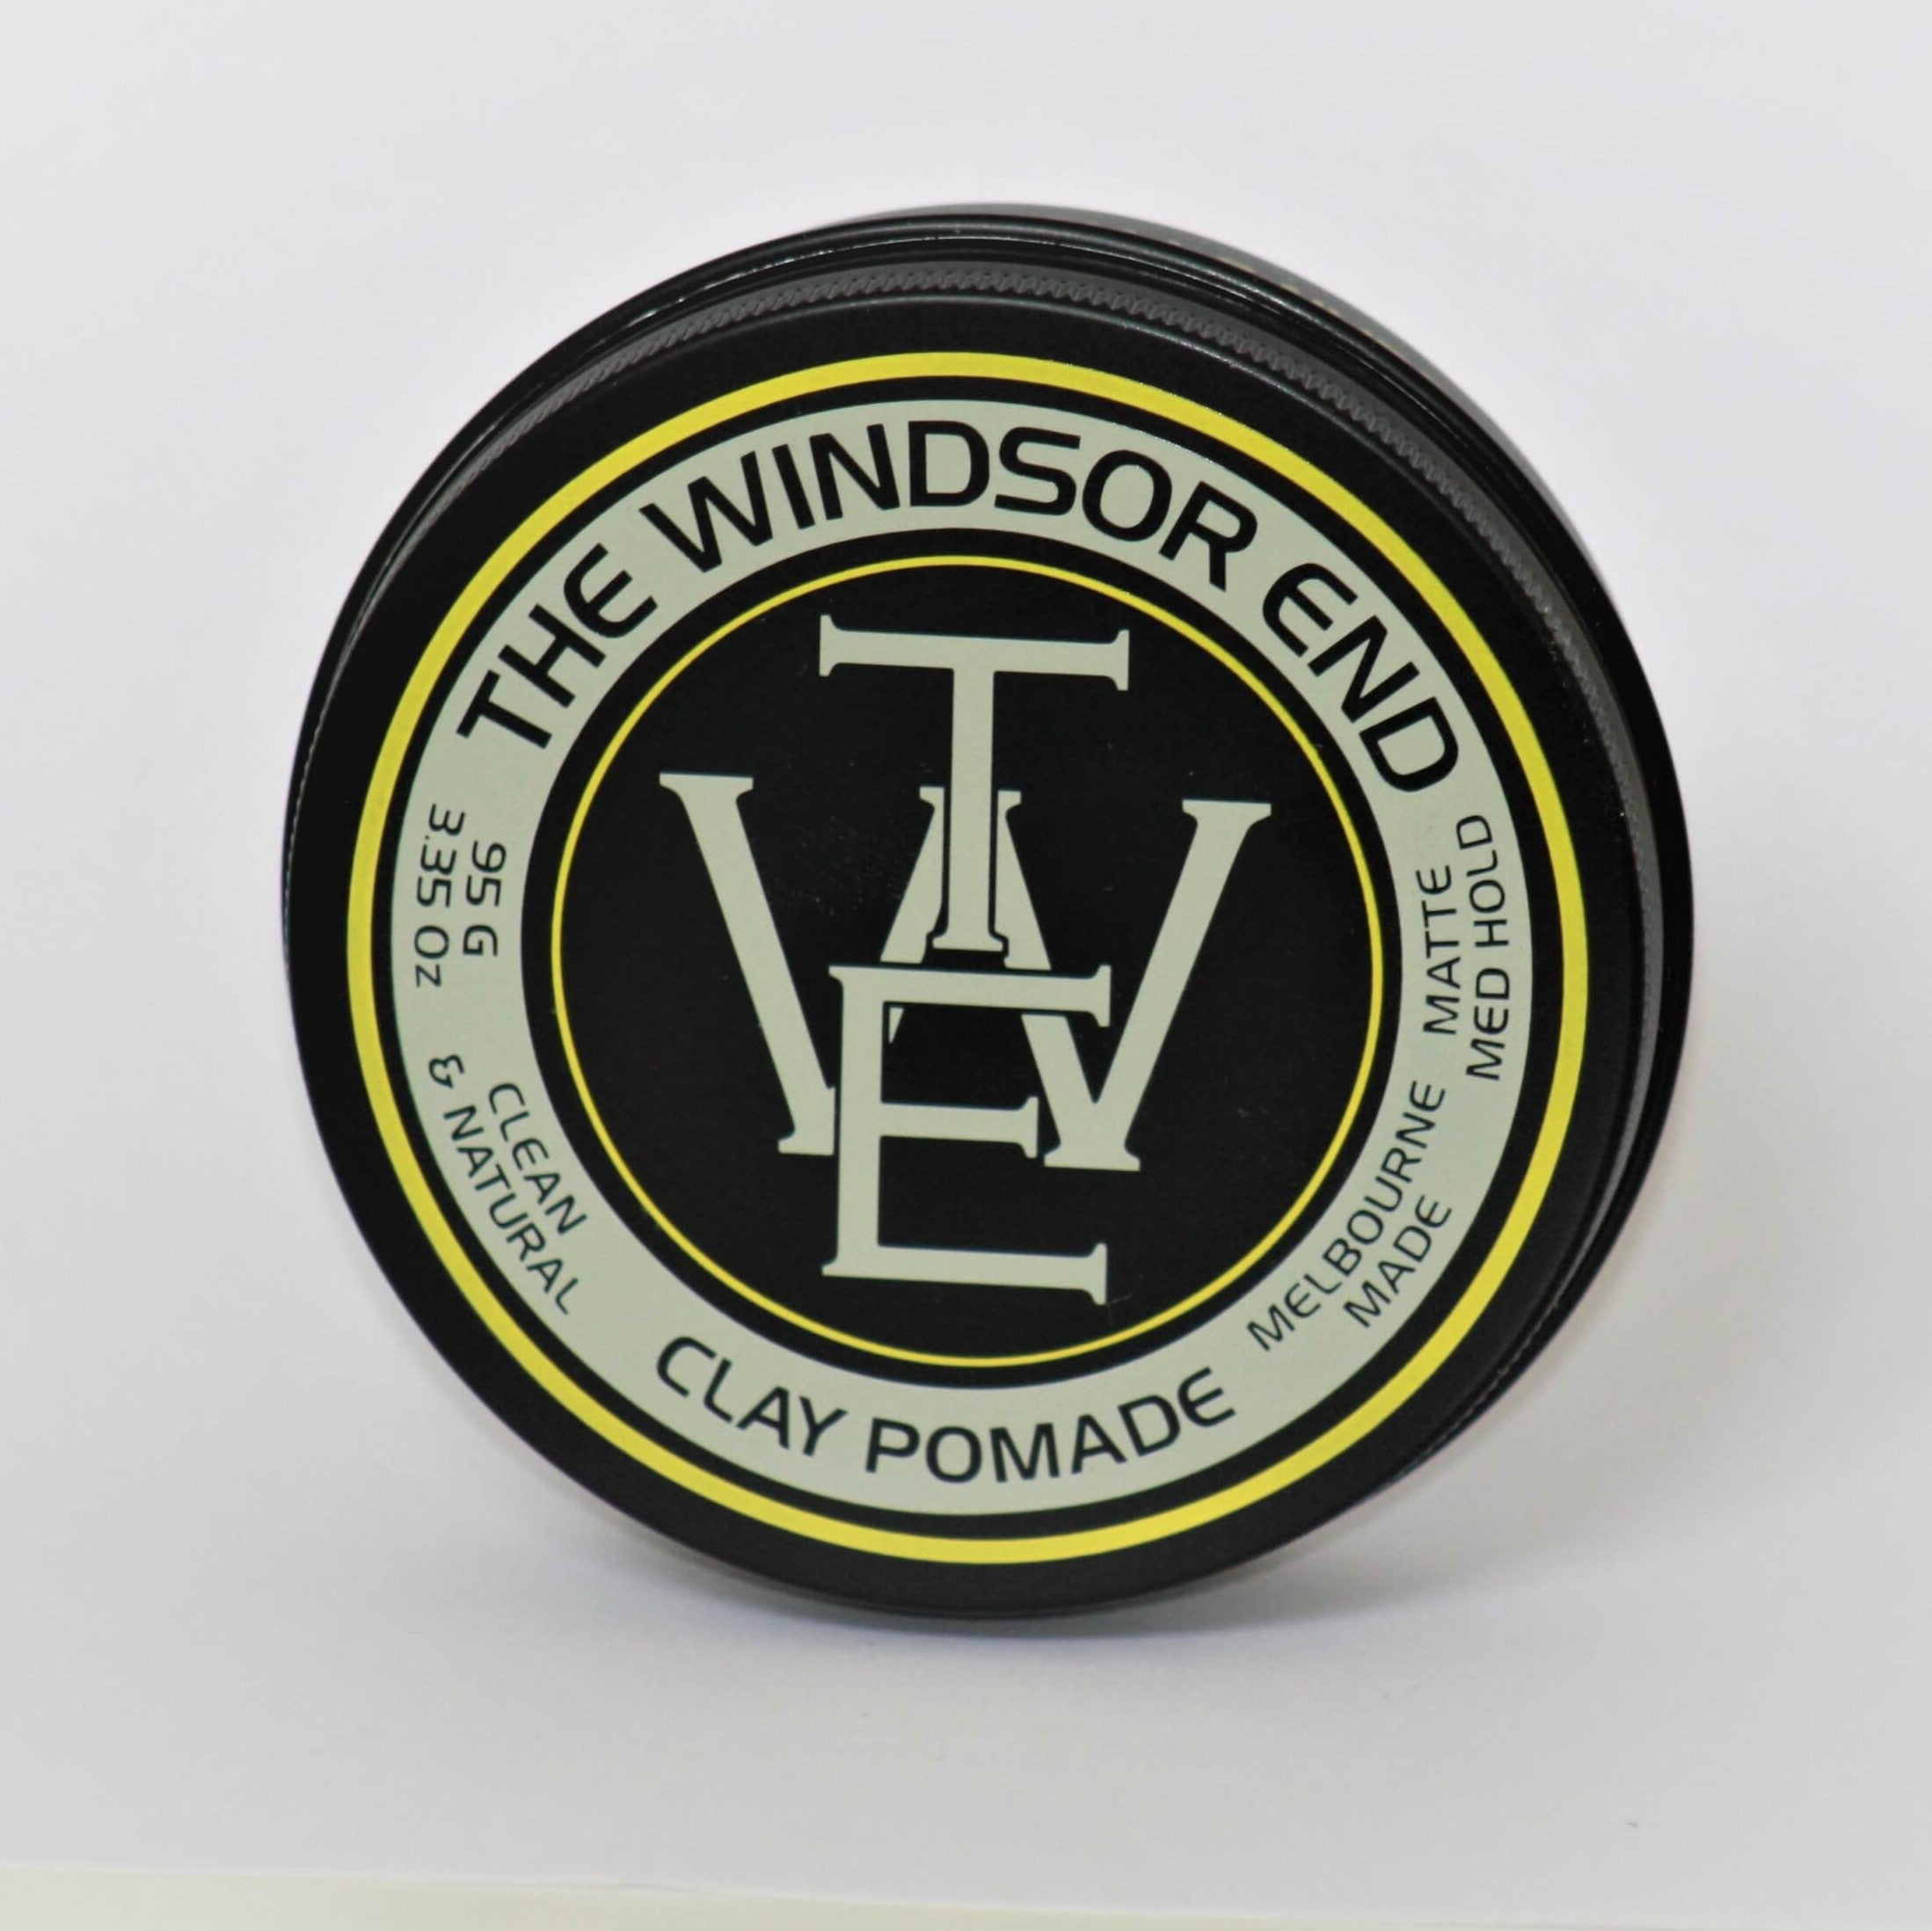 The Windsor End clay pomade natural vegan palm oil free clean no chemicals synthetics hemp seed oil kakadu plum kaolin clay orange essential oil order online buy